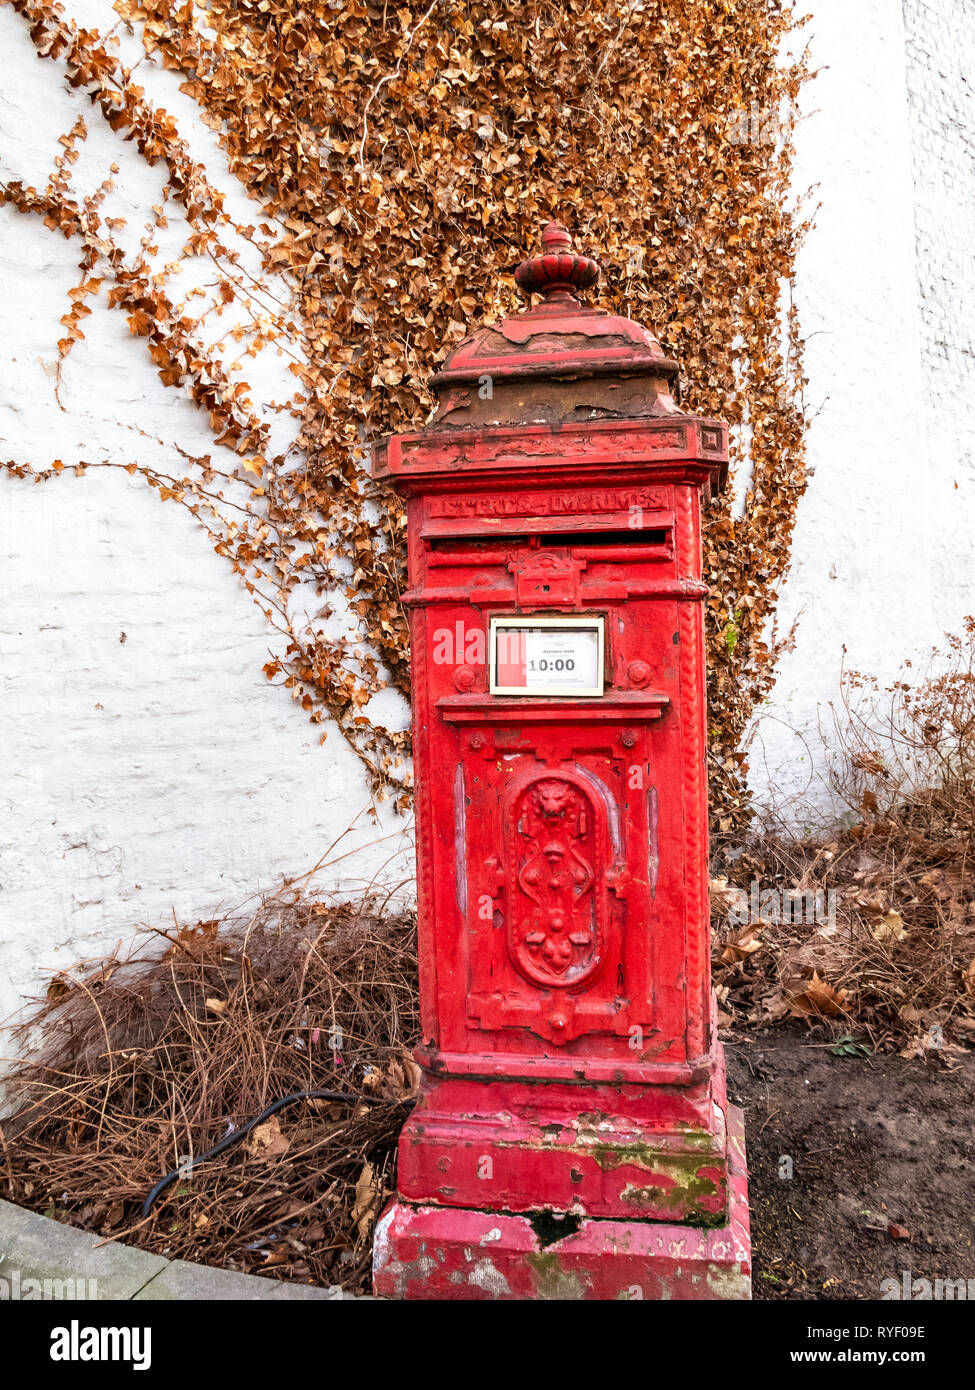 Old red postbox in the Belgian town of Verviers against a whitewashed building wall with a dried winter creeper plant - Stock Image